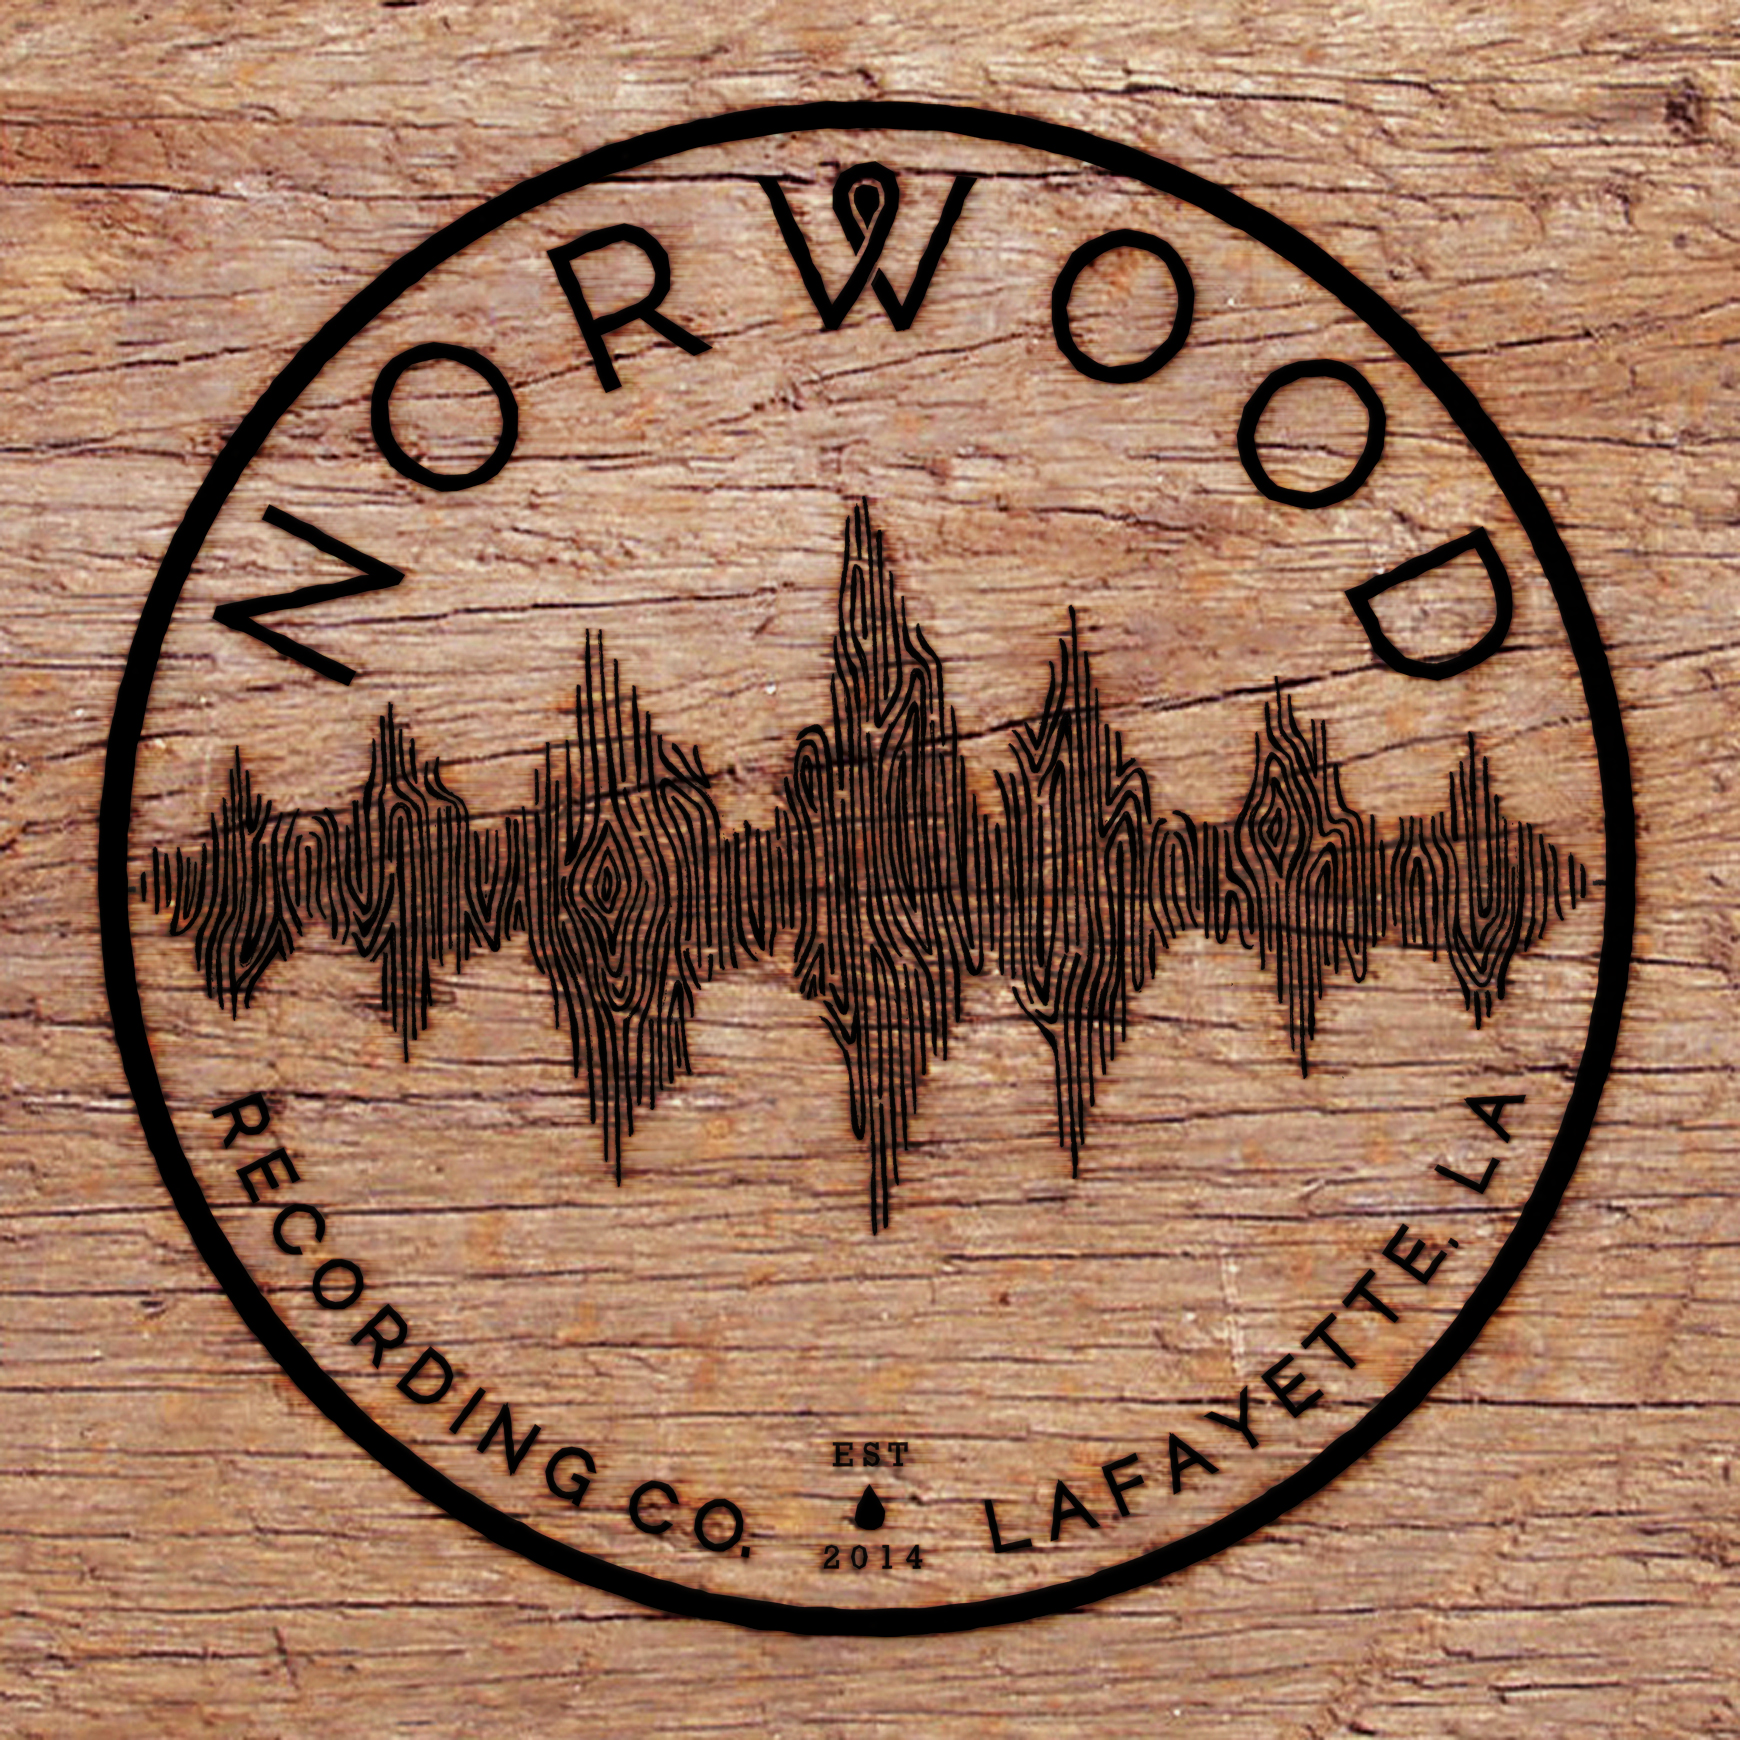 Woodburn concept for Norwood Recording Co. 2015